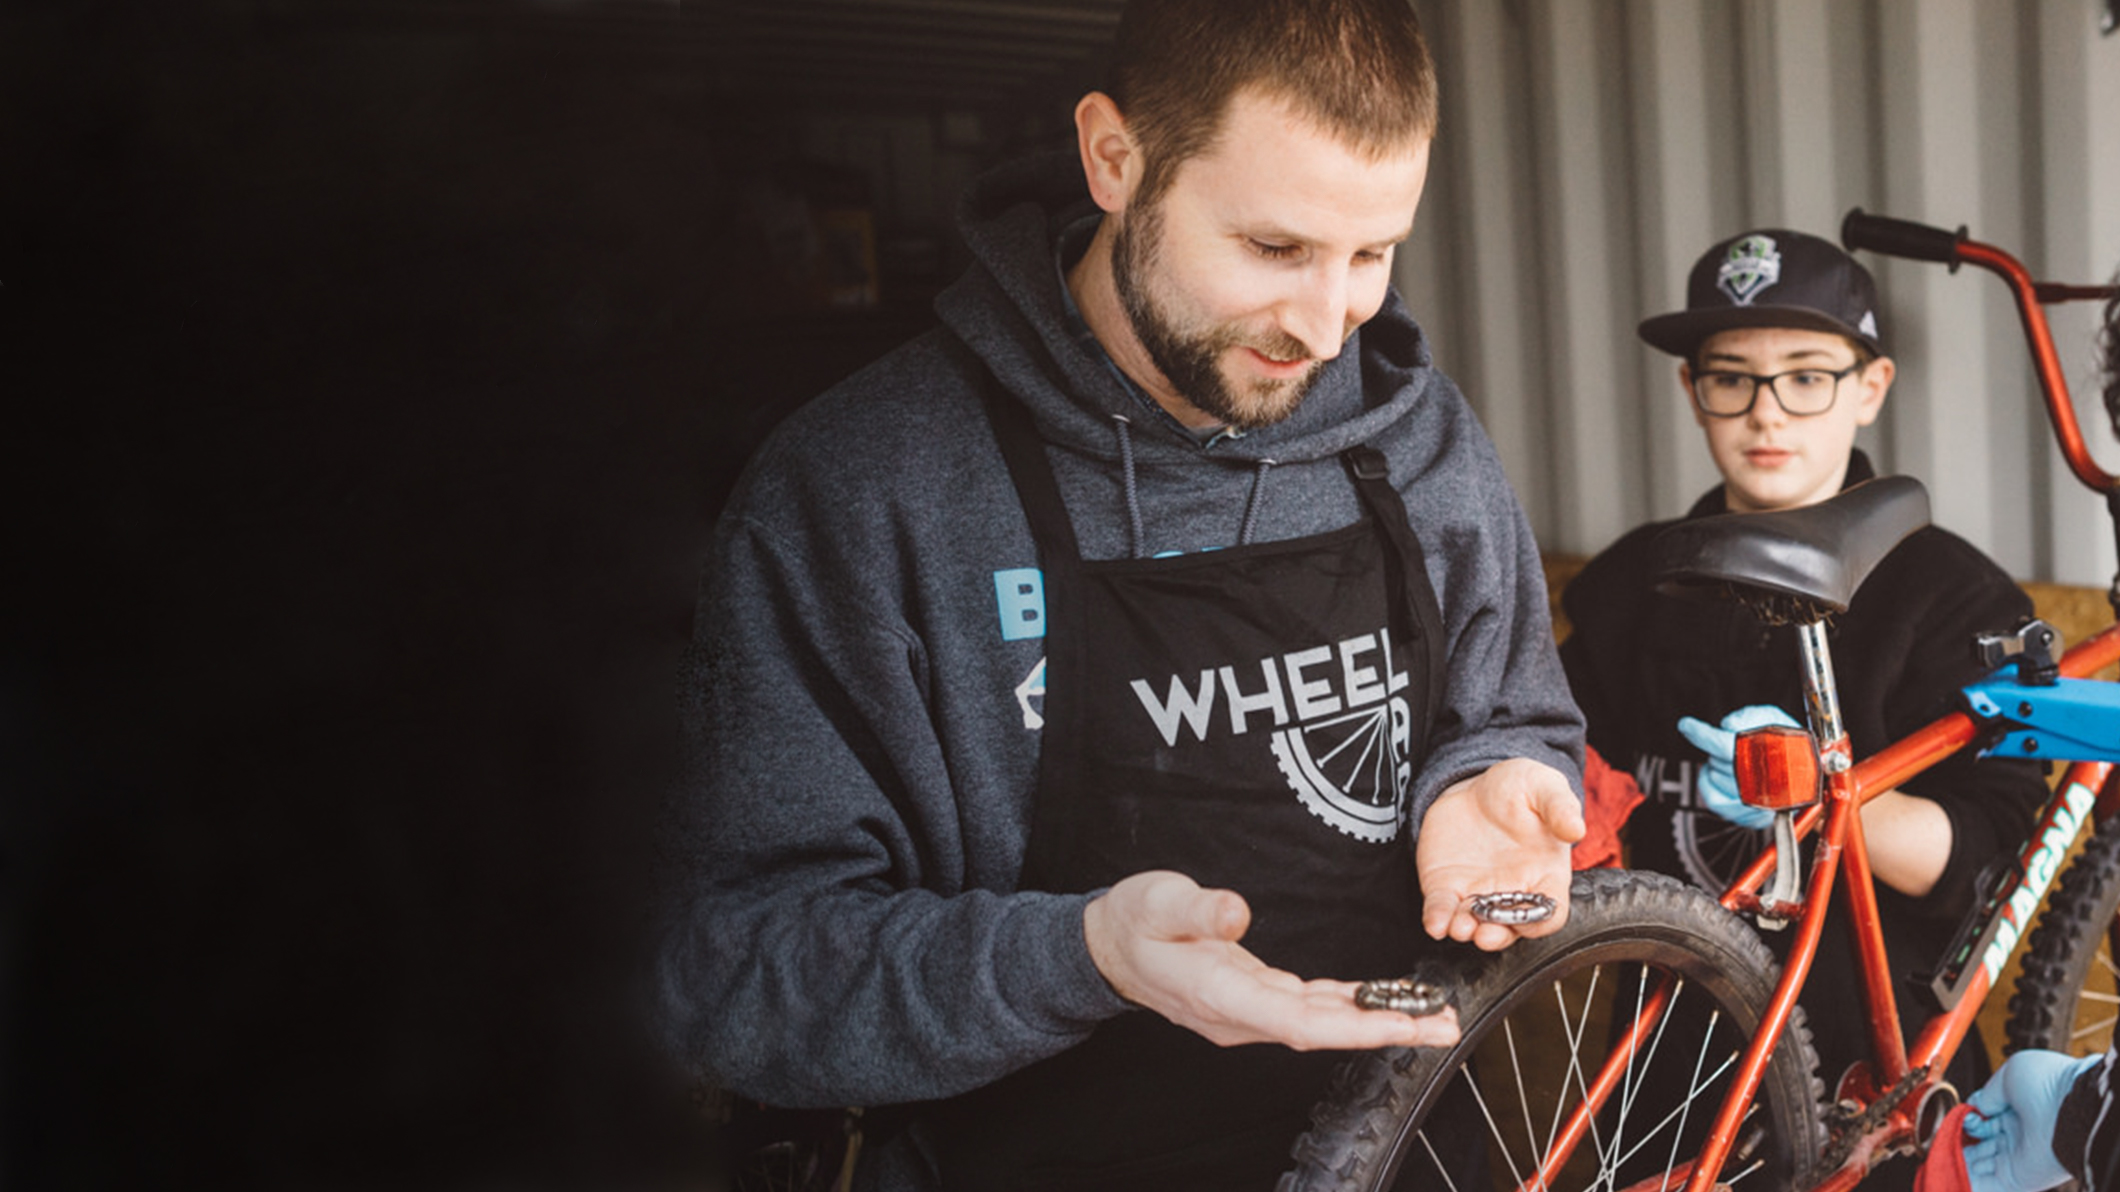 A volunteer man working on a bicycle with a kid